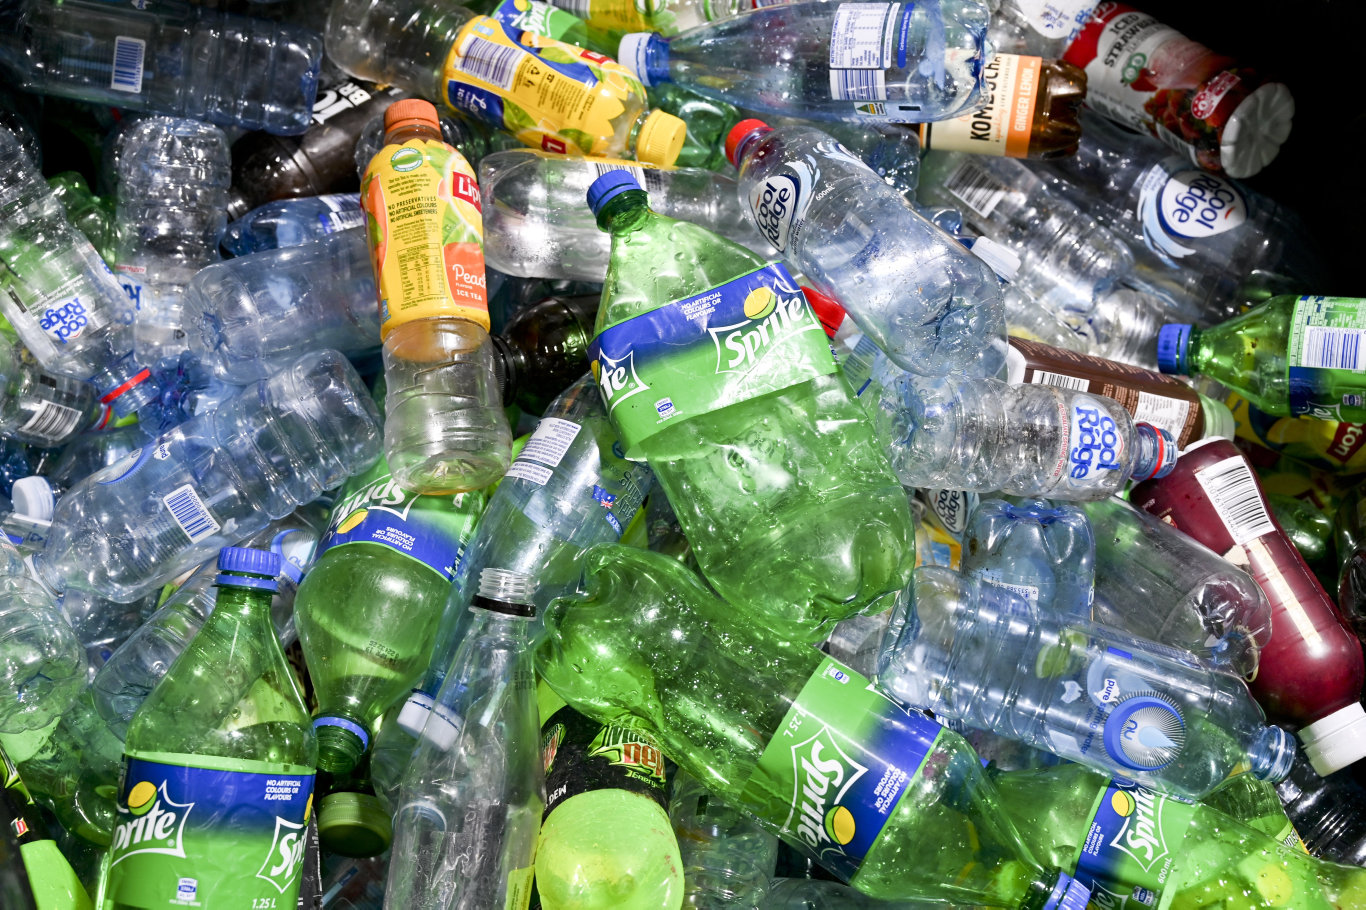 Lifeline's containers for change has collected 9 million bottles.